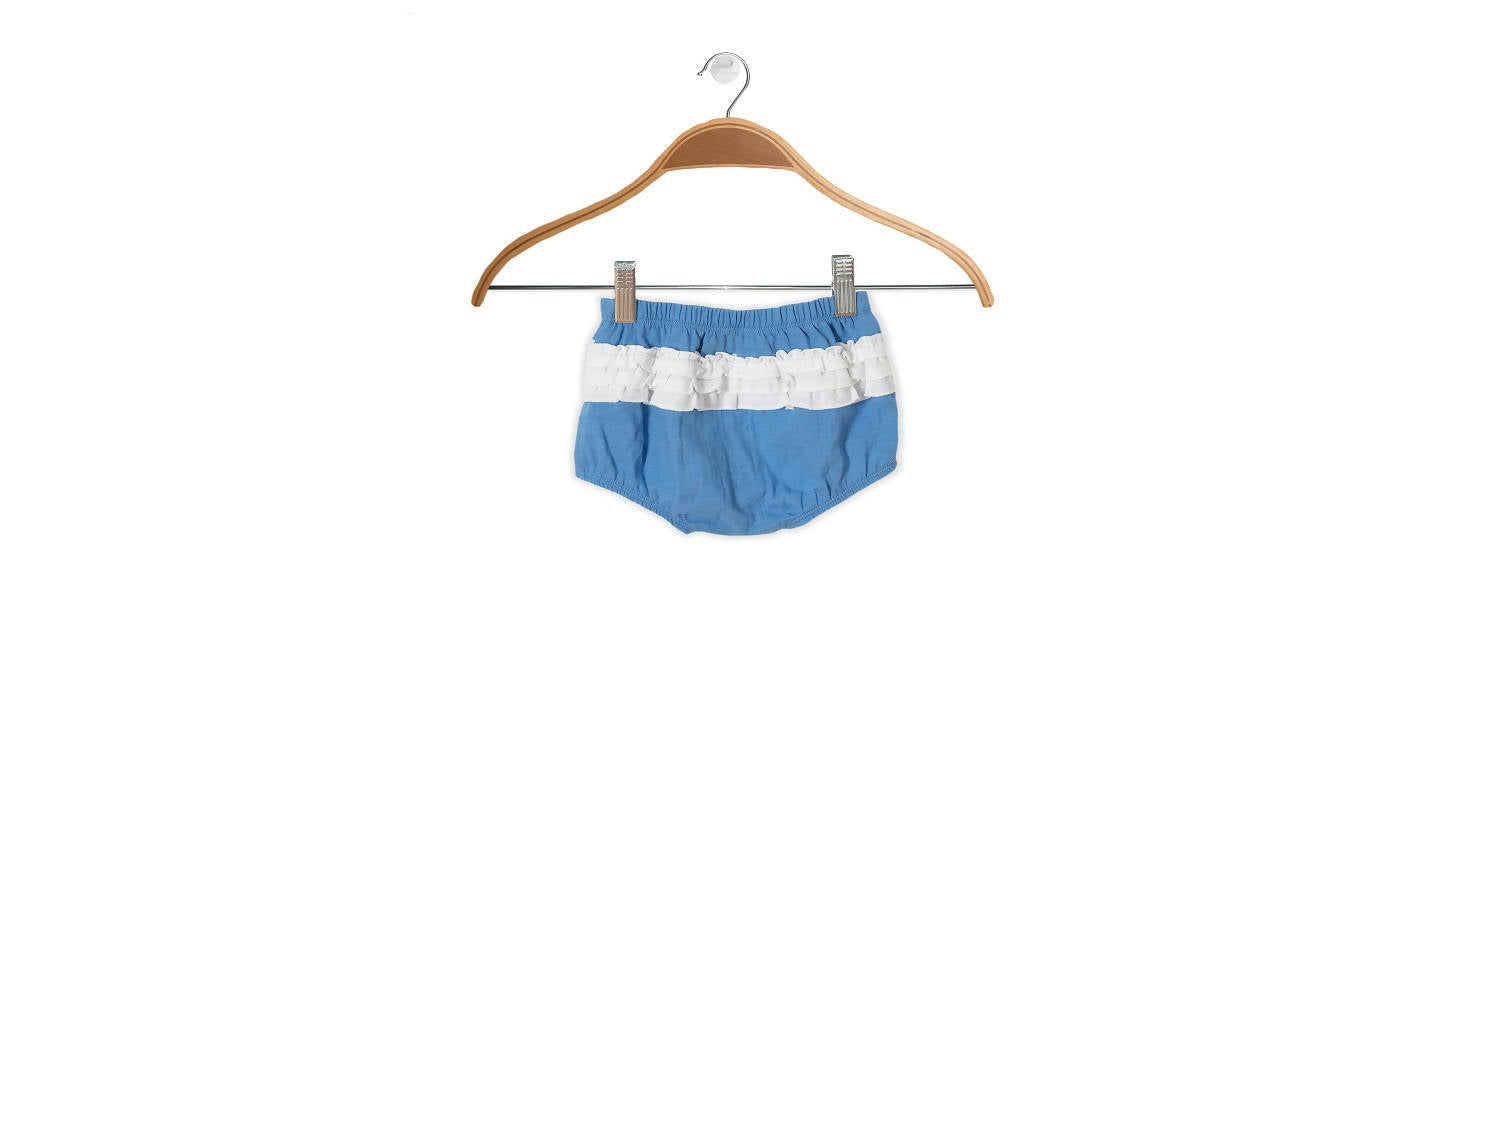 Peter Jo Kids Organic Shorts Gigil Puff shorts for baby girls blue made of organic muslin cotton 1